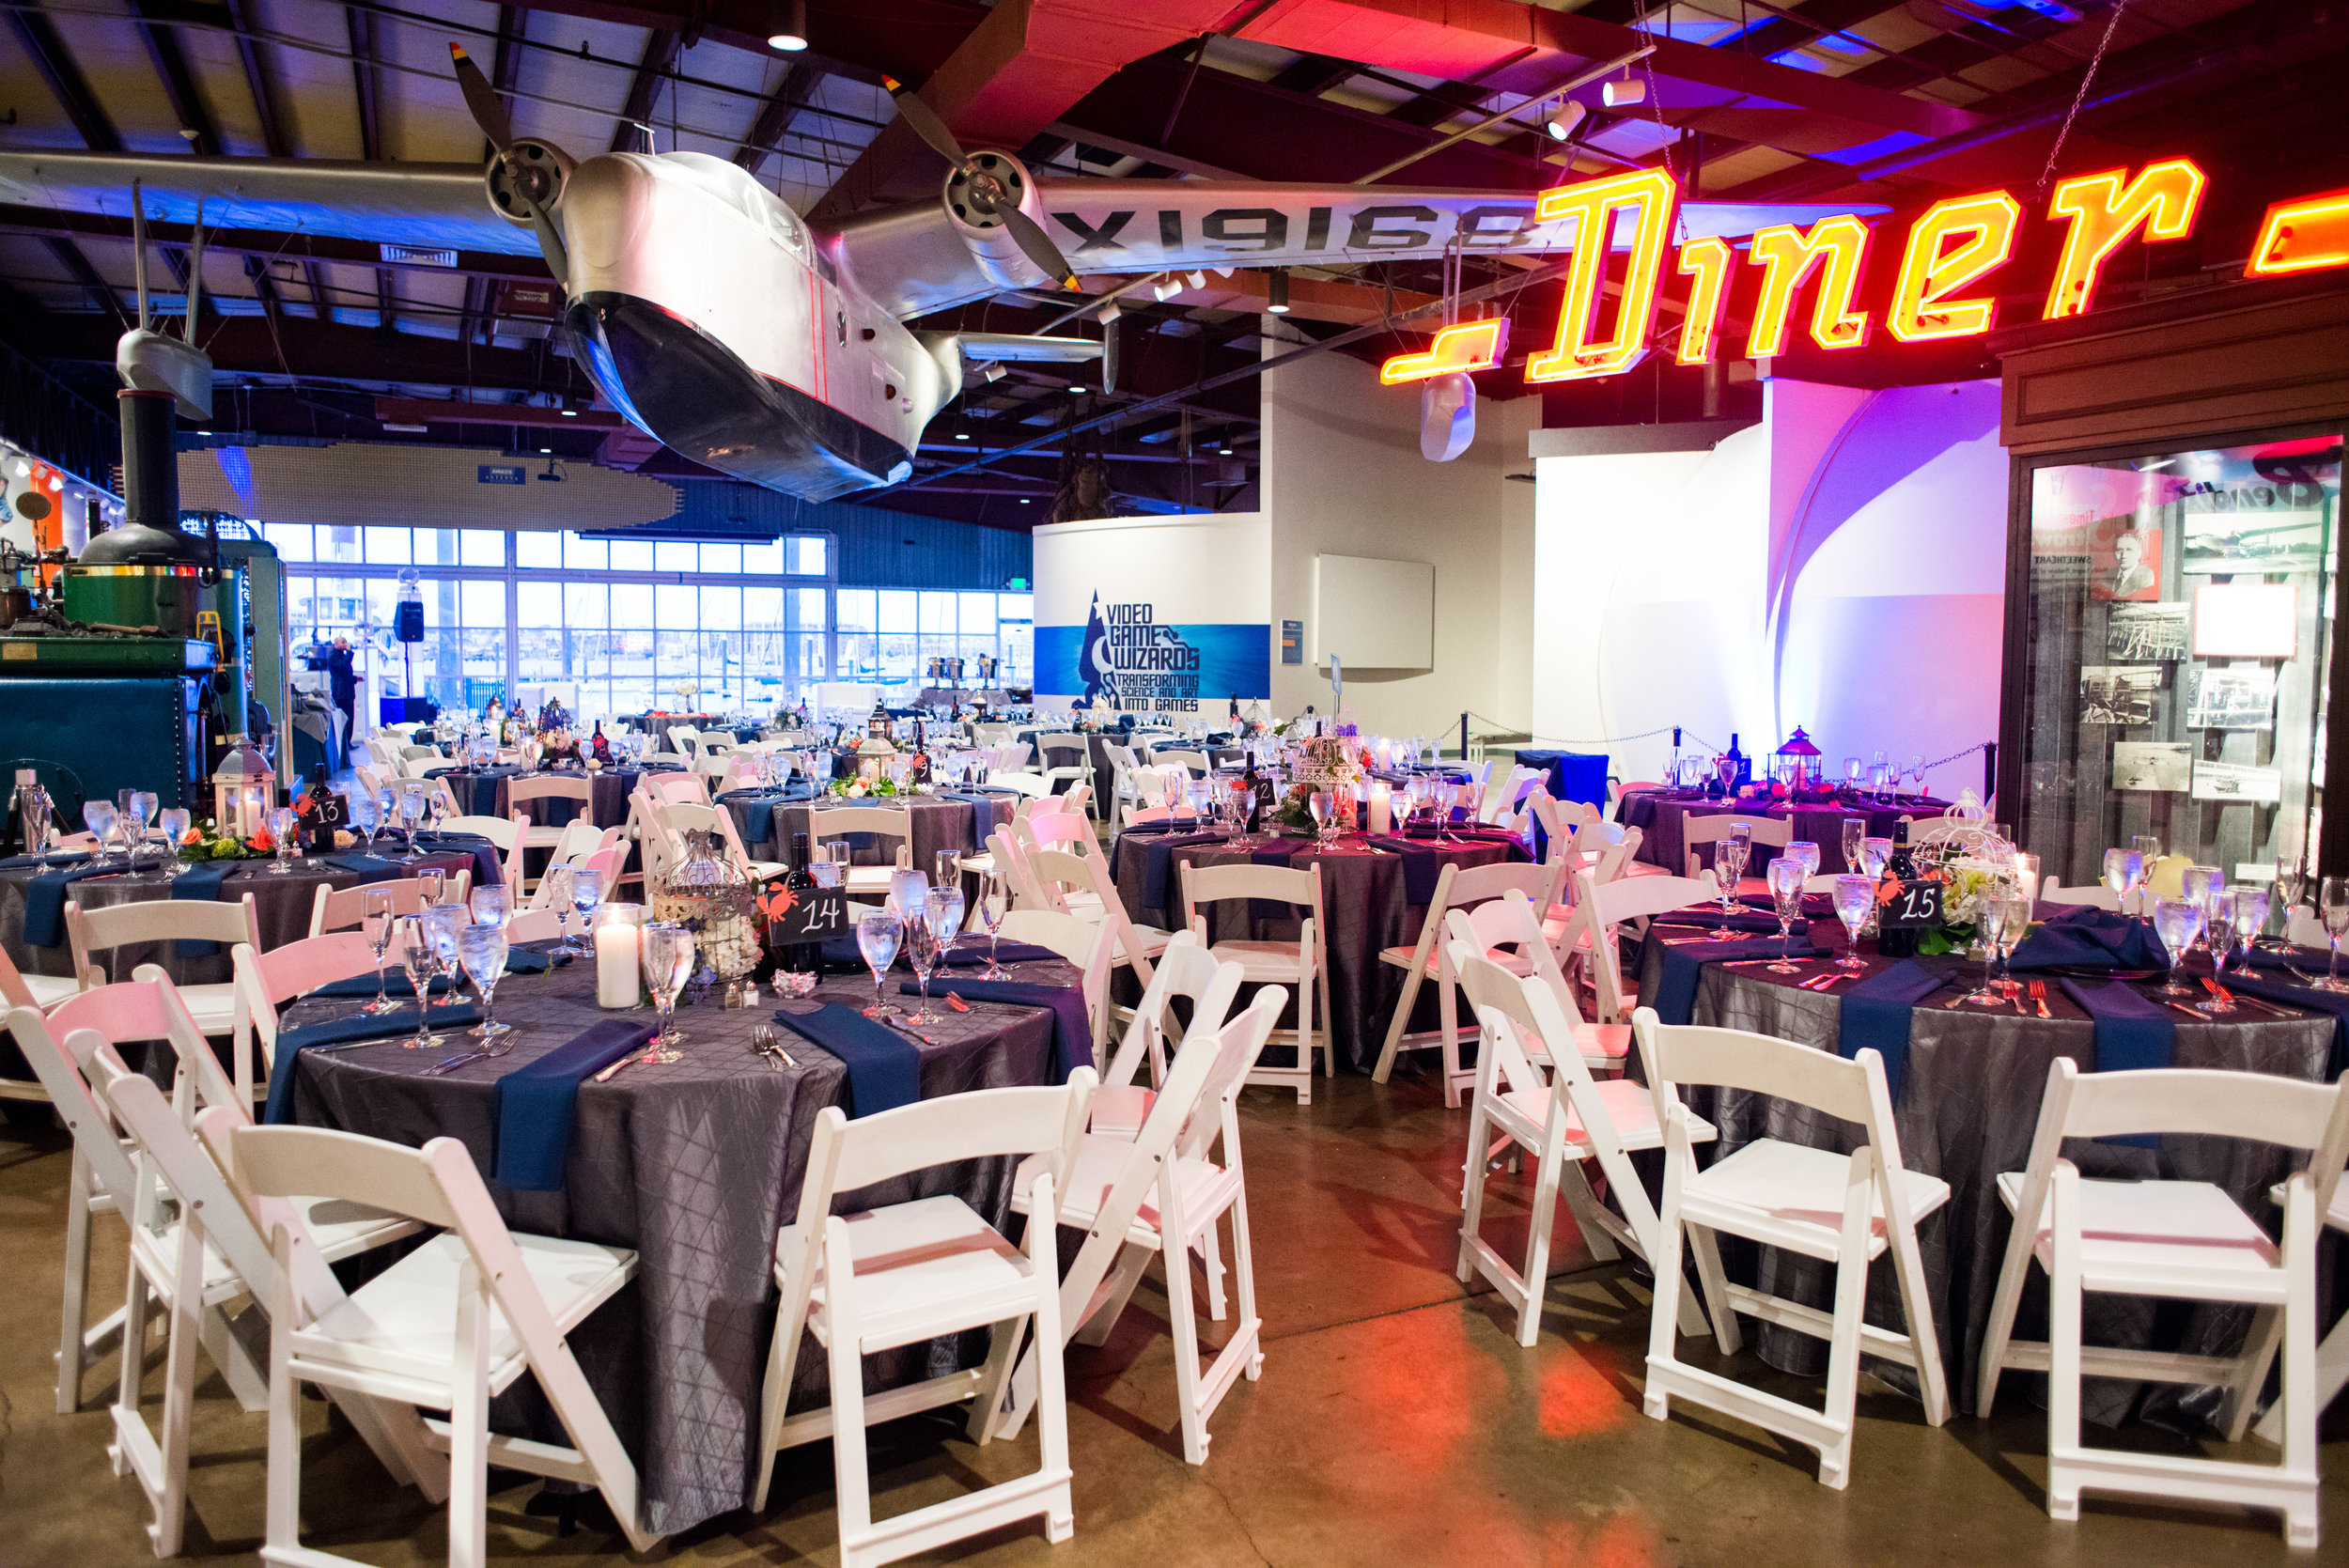 The Baltimore Museum of Industry set up for a wedding reception